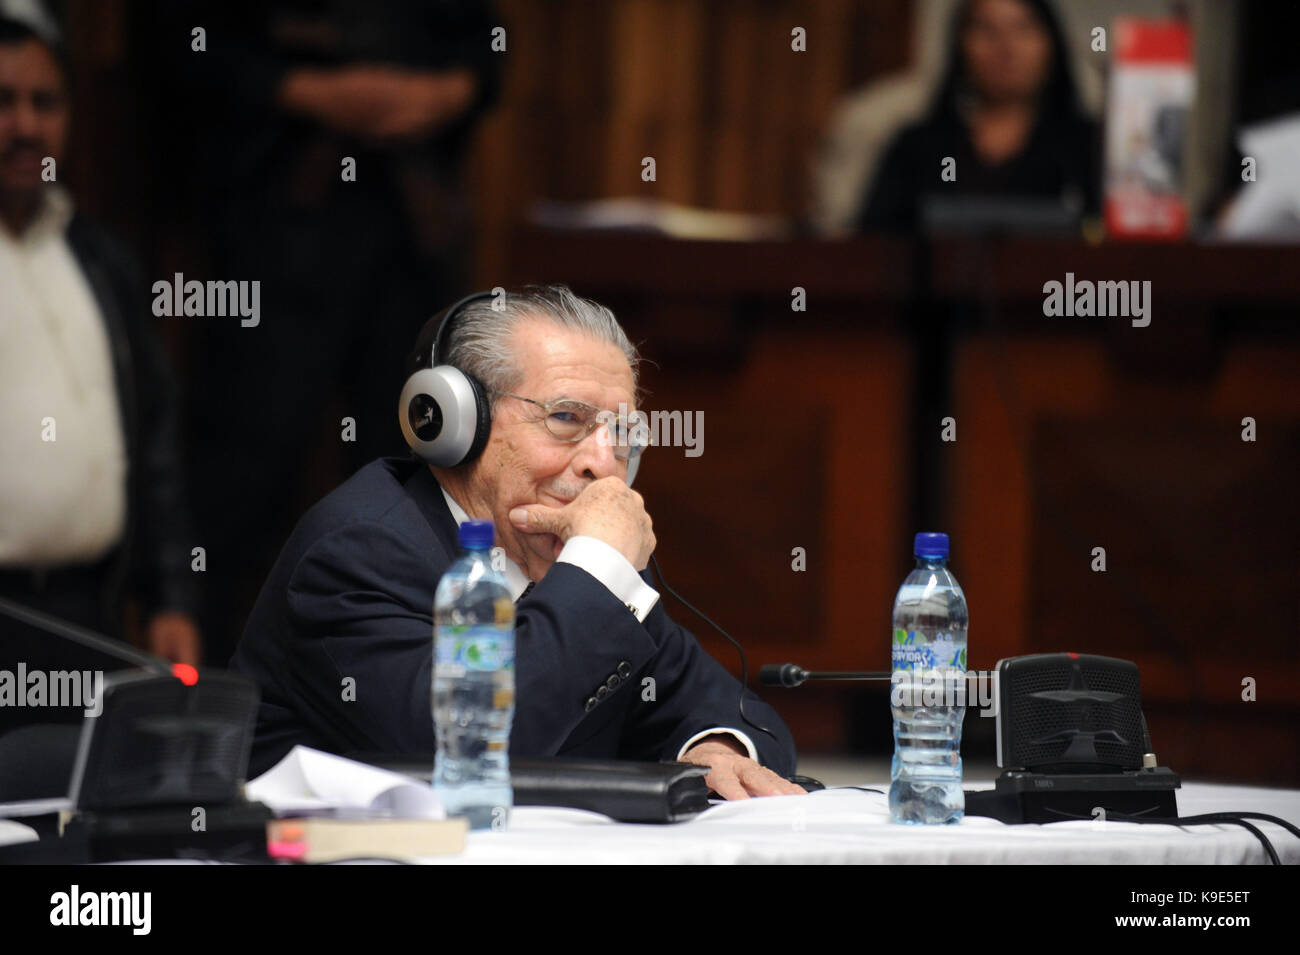 The trial for former Guatemalan dictator, Efrain Rios Montt starts in the Supreme Court of Justice in Guatemala - Stock Image